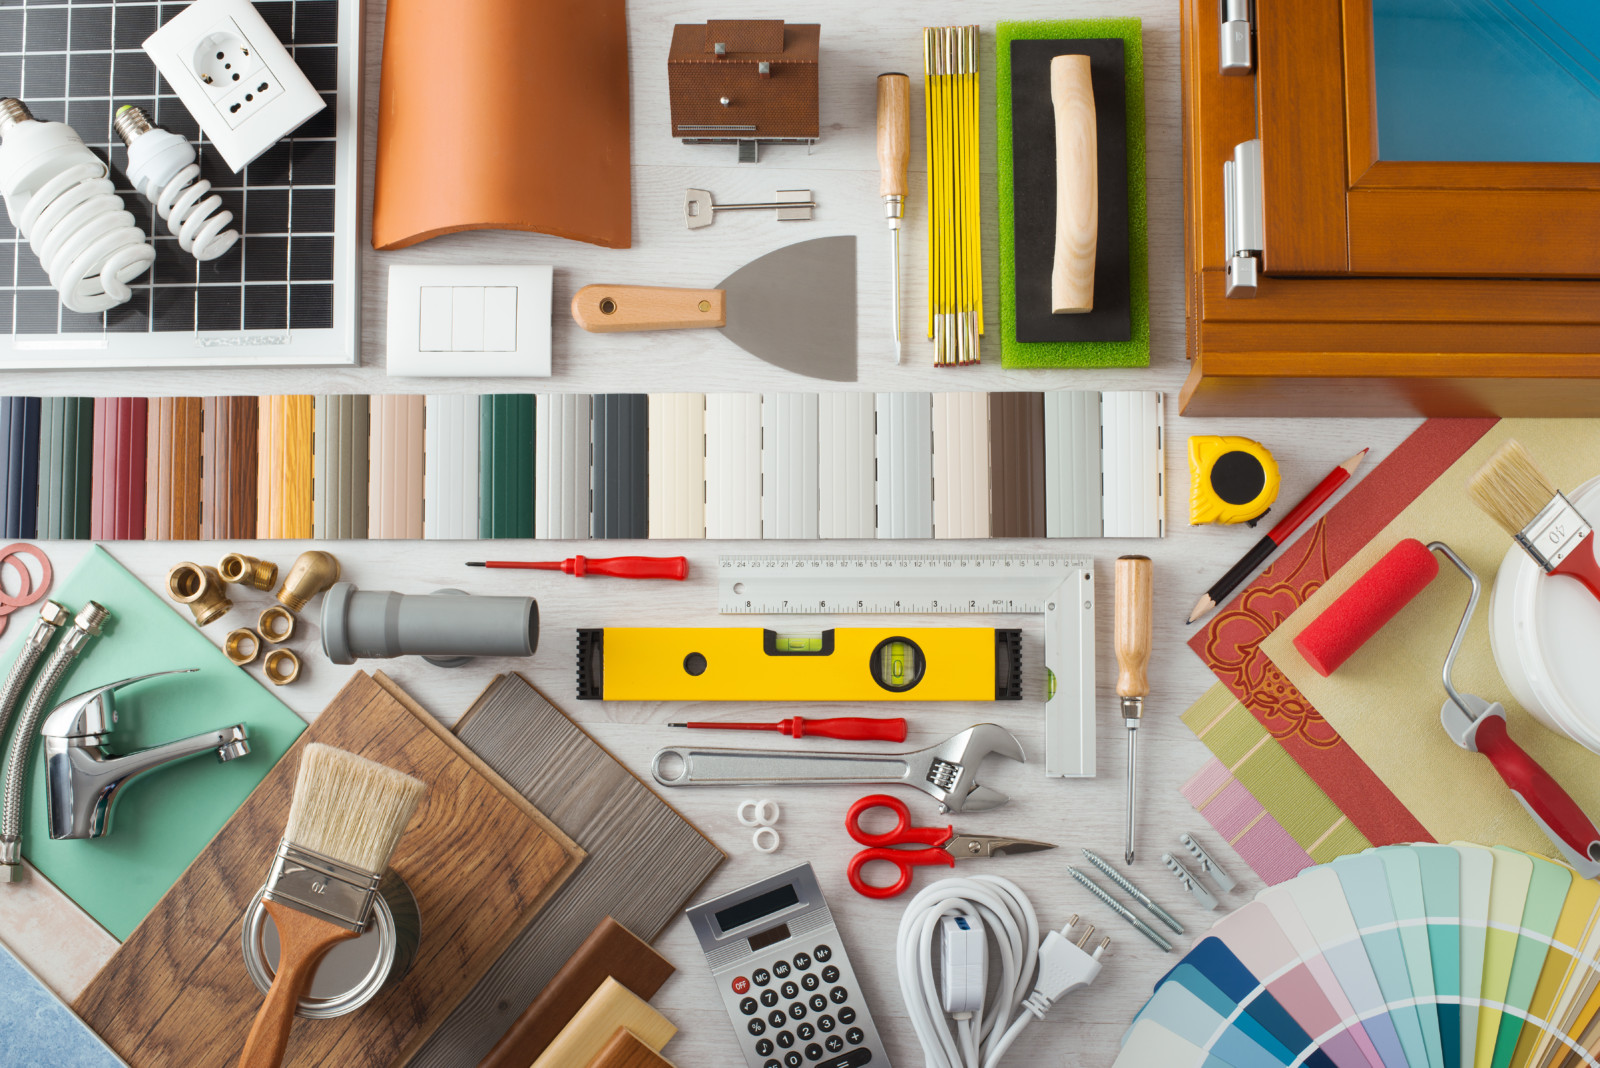 6 Creative Ways to Fund Your Home Renovations - Zillow